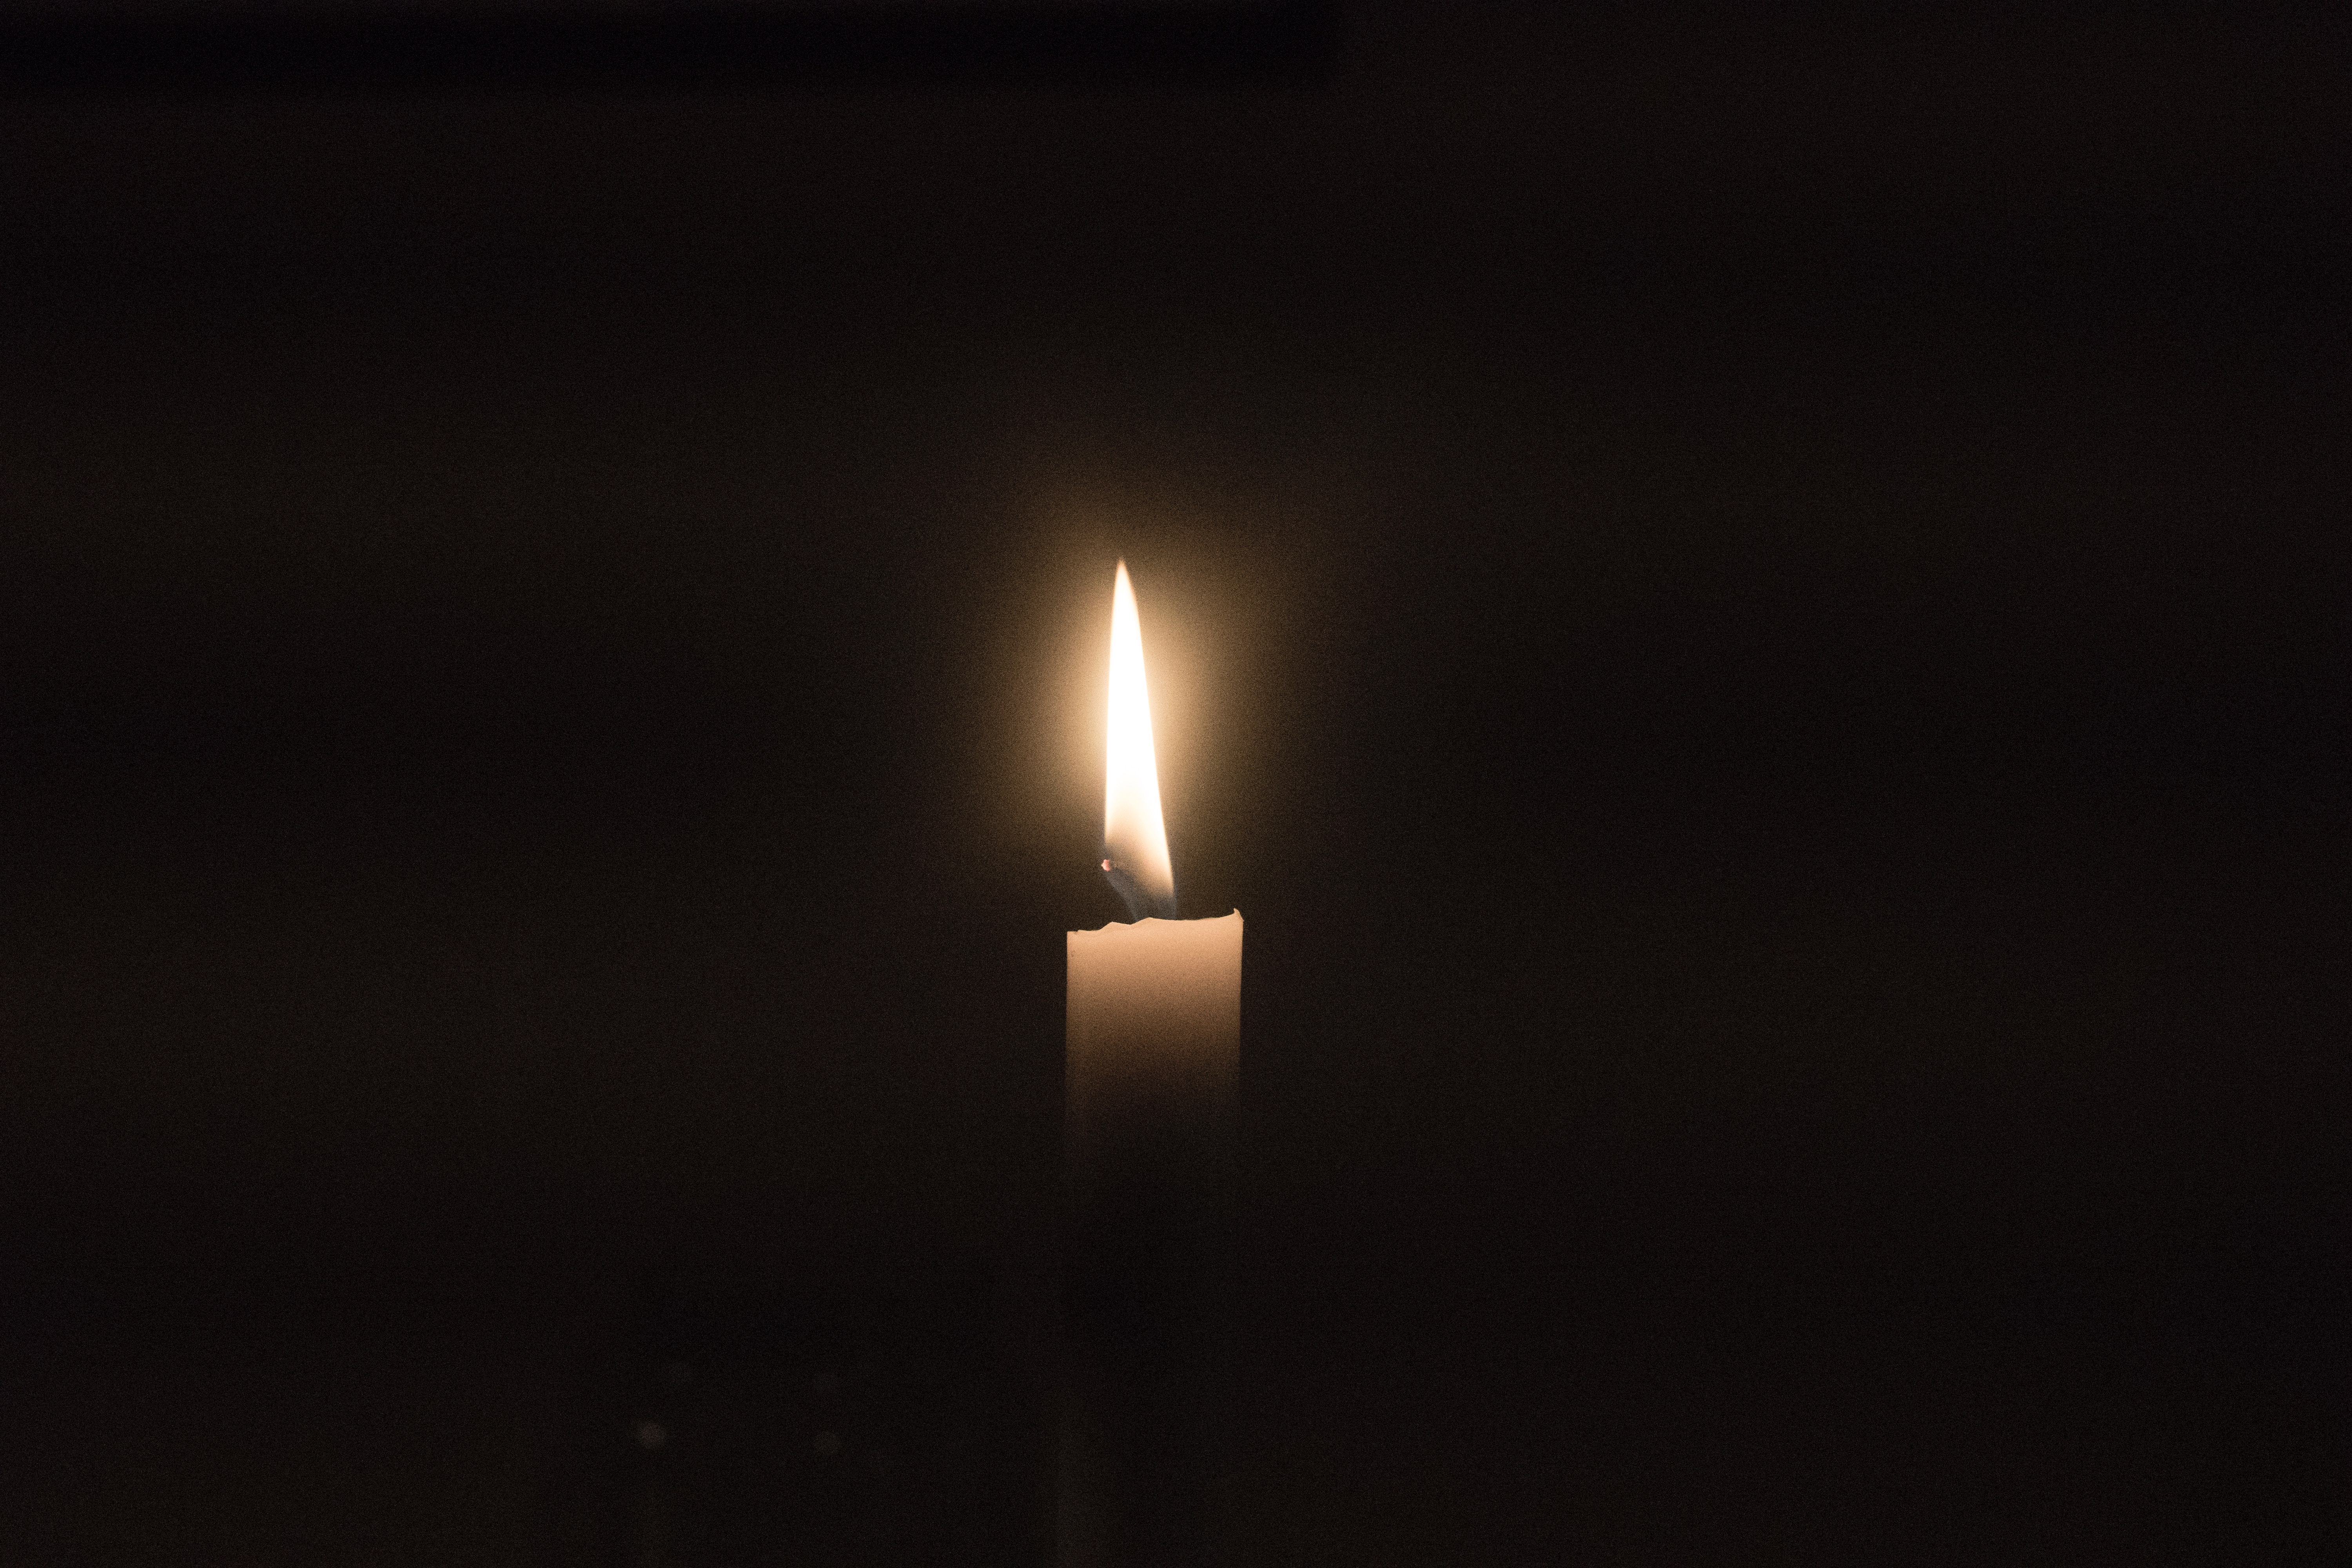 A candle for gratitude